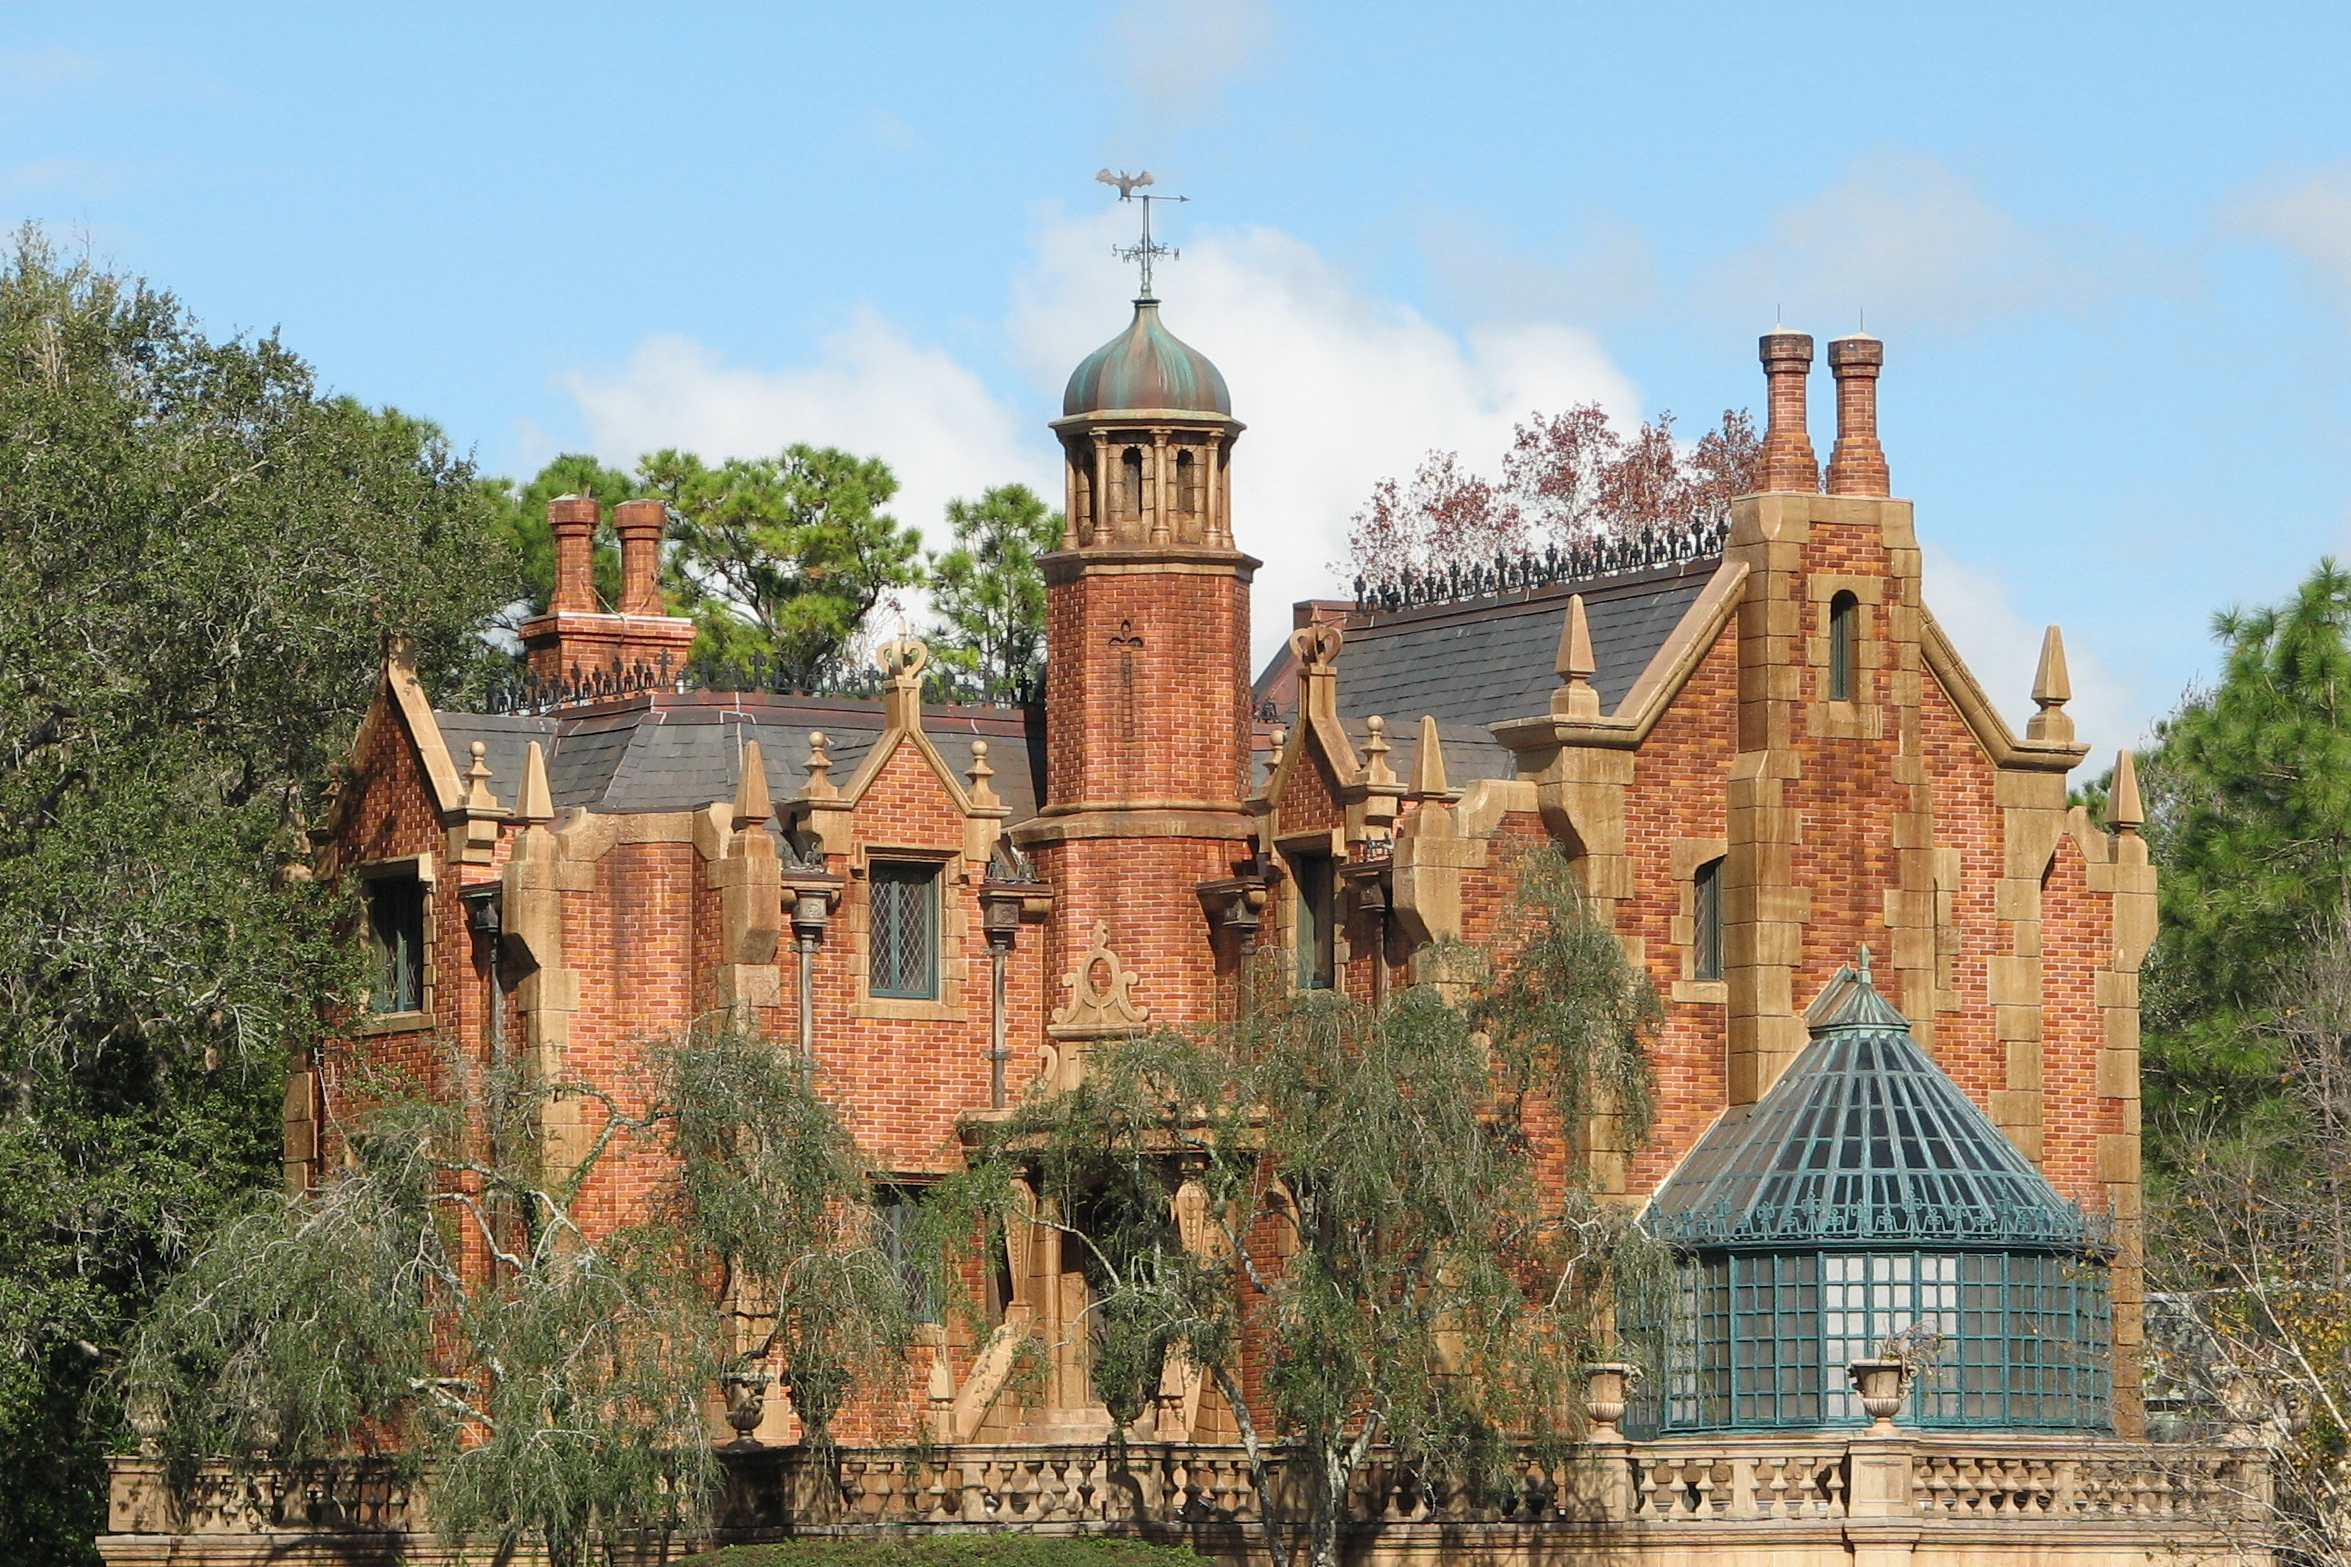 File:The Haunted Mansion.jpg - Wikipedia